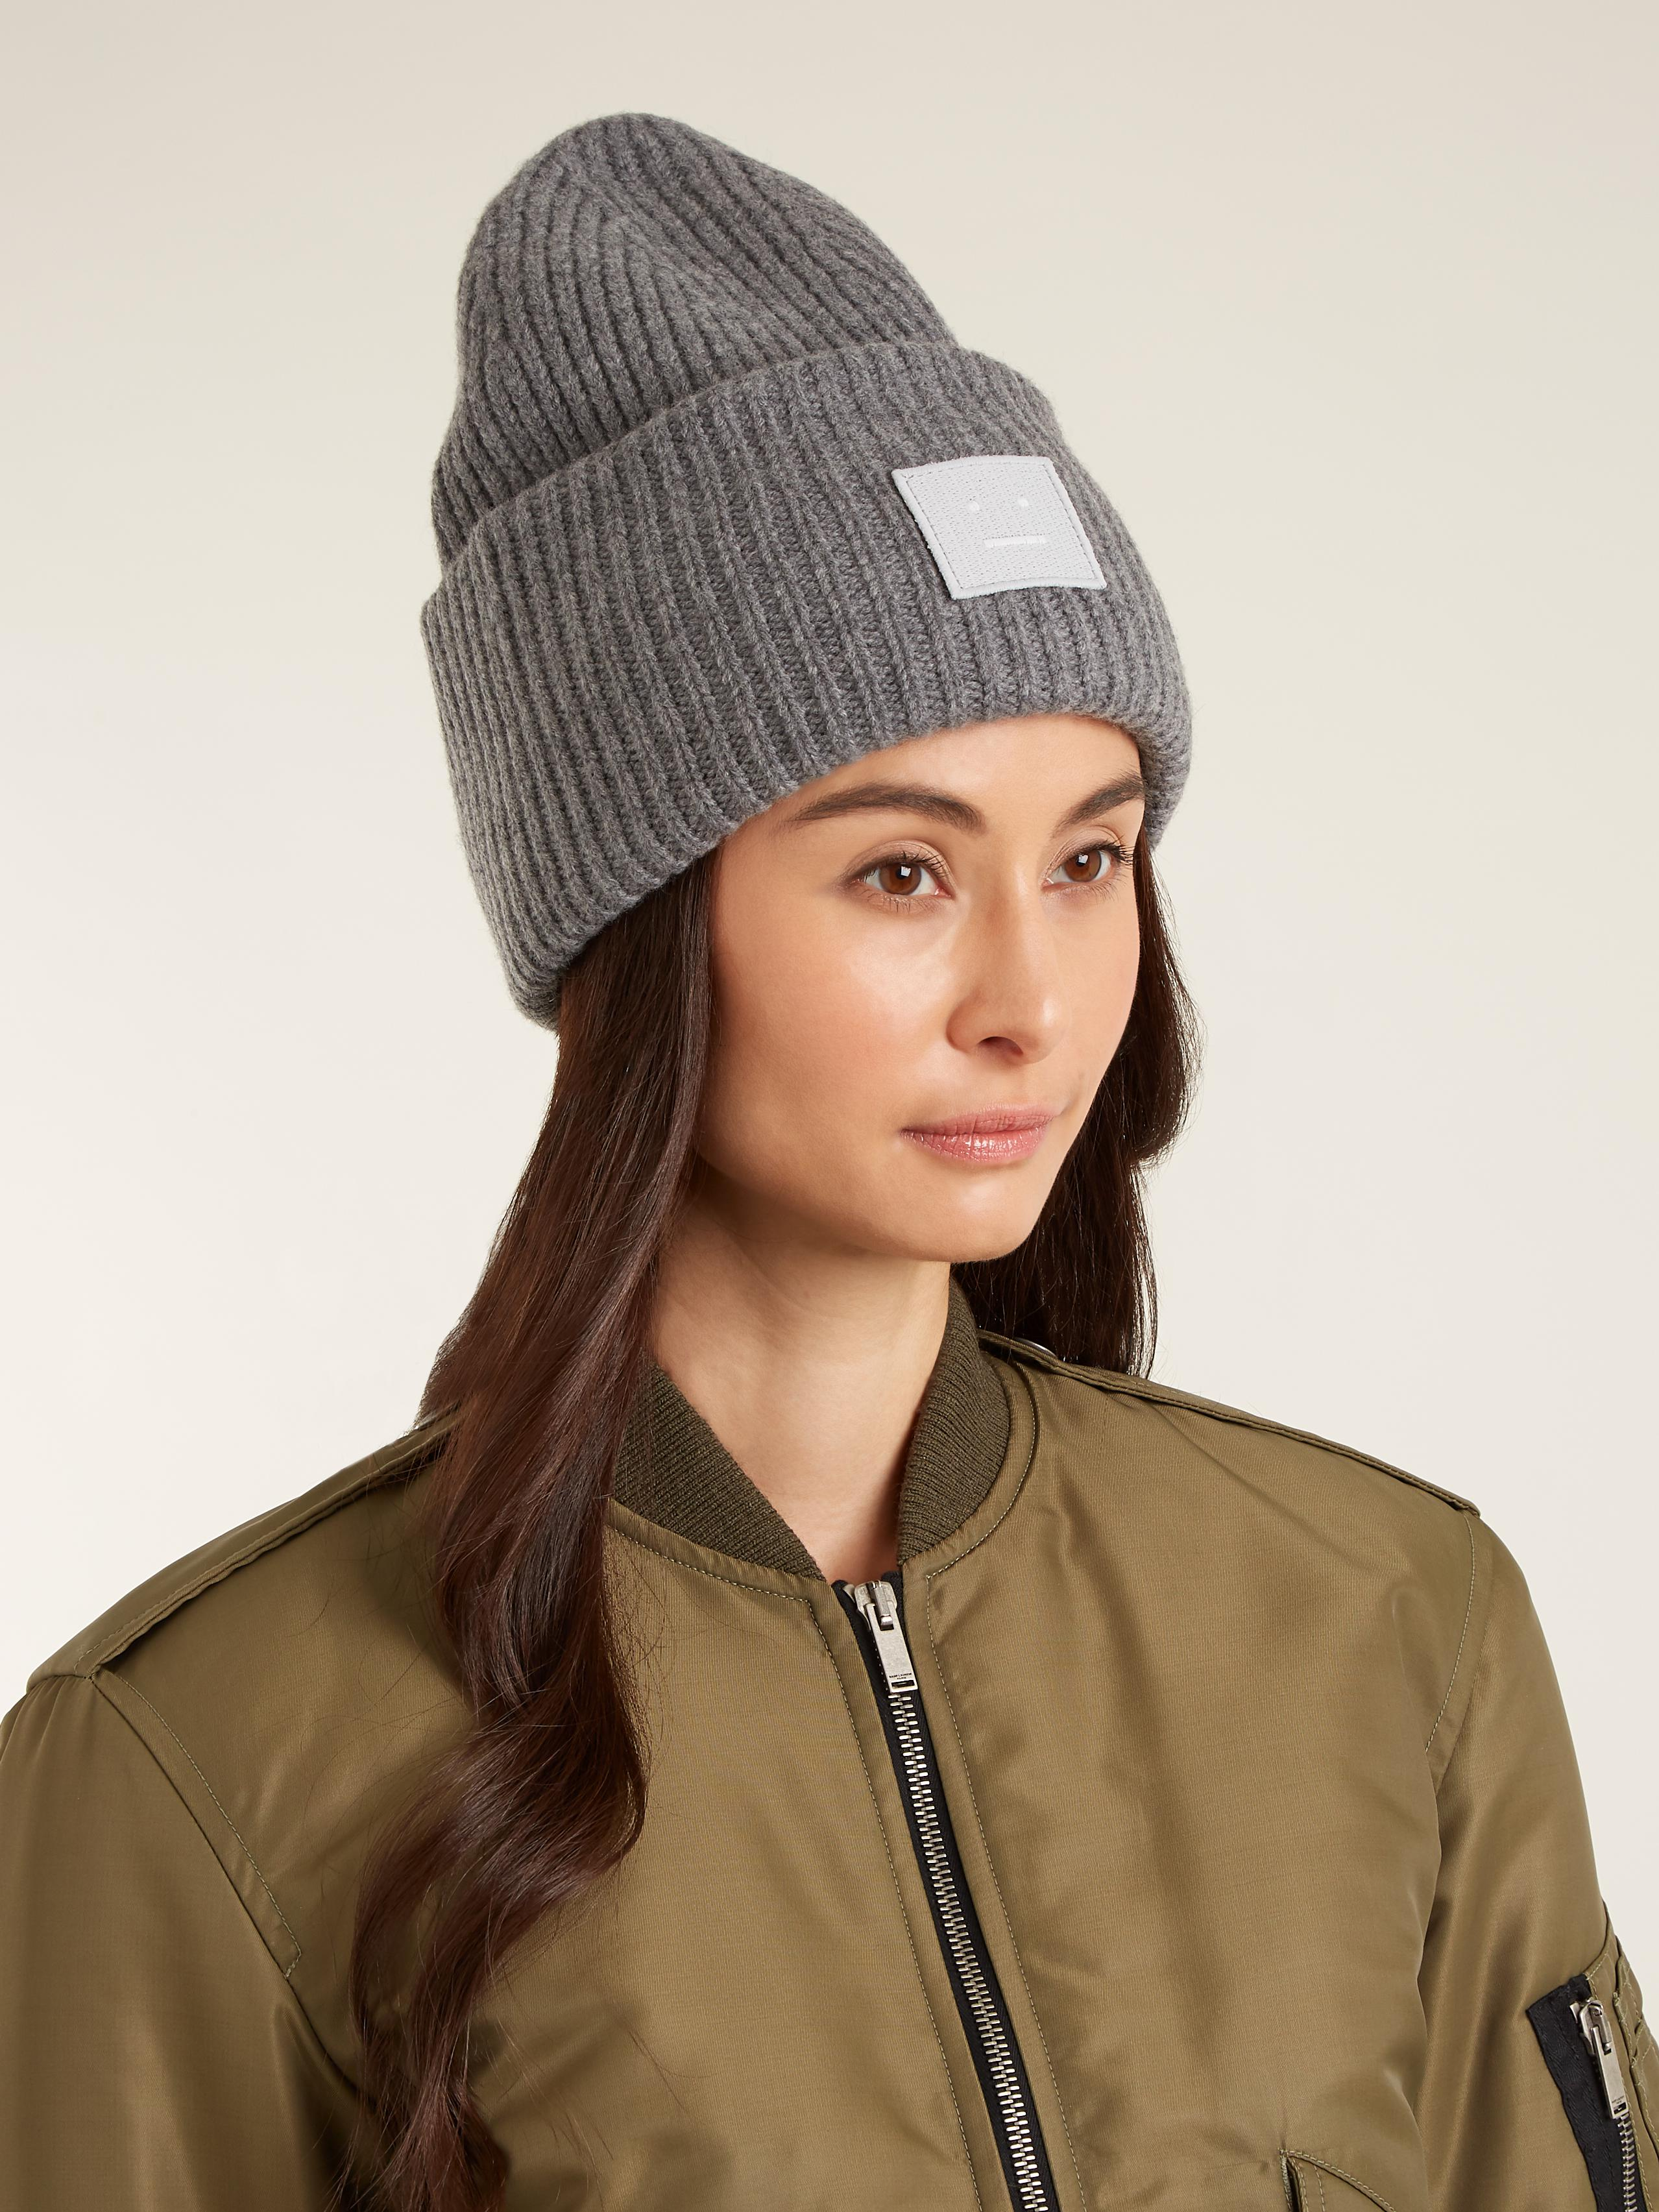 Lyst - Acne Studios Pansy S Face Ribbed-knit Beanie Hat in Gray 35d371ba001b